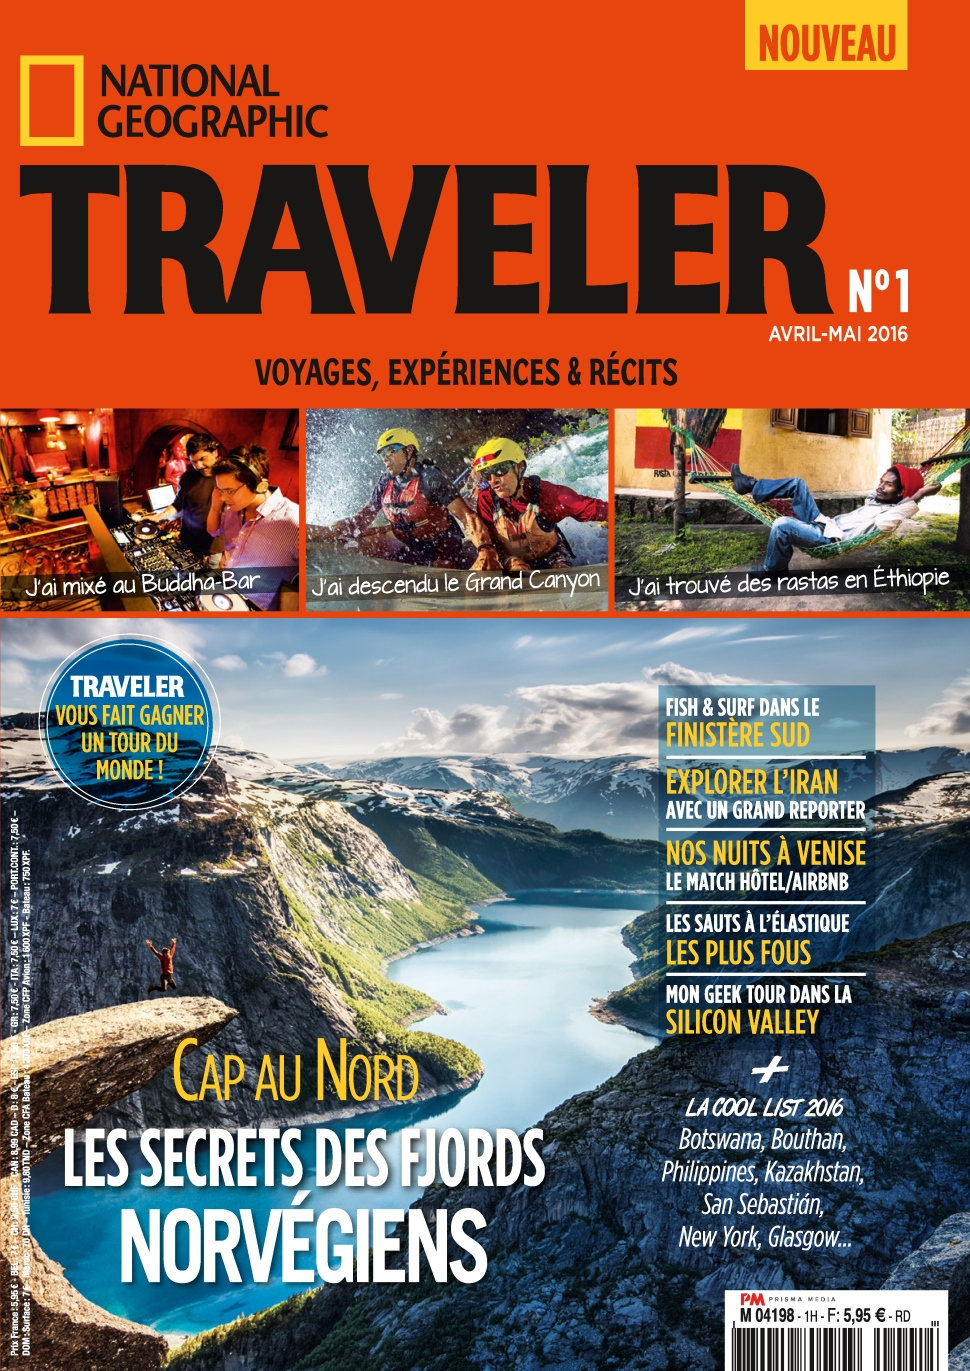 National Geographic Traveler N°1 - Avril/Mai 2016